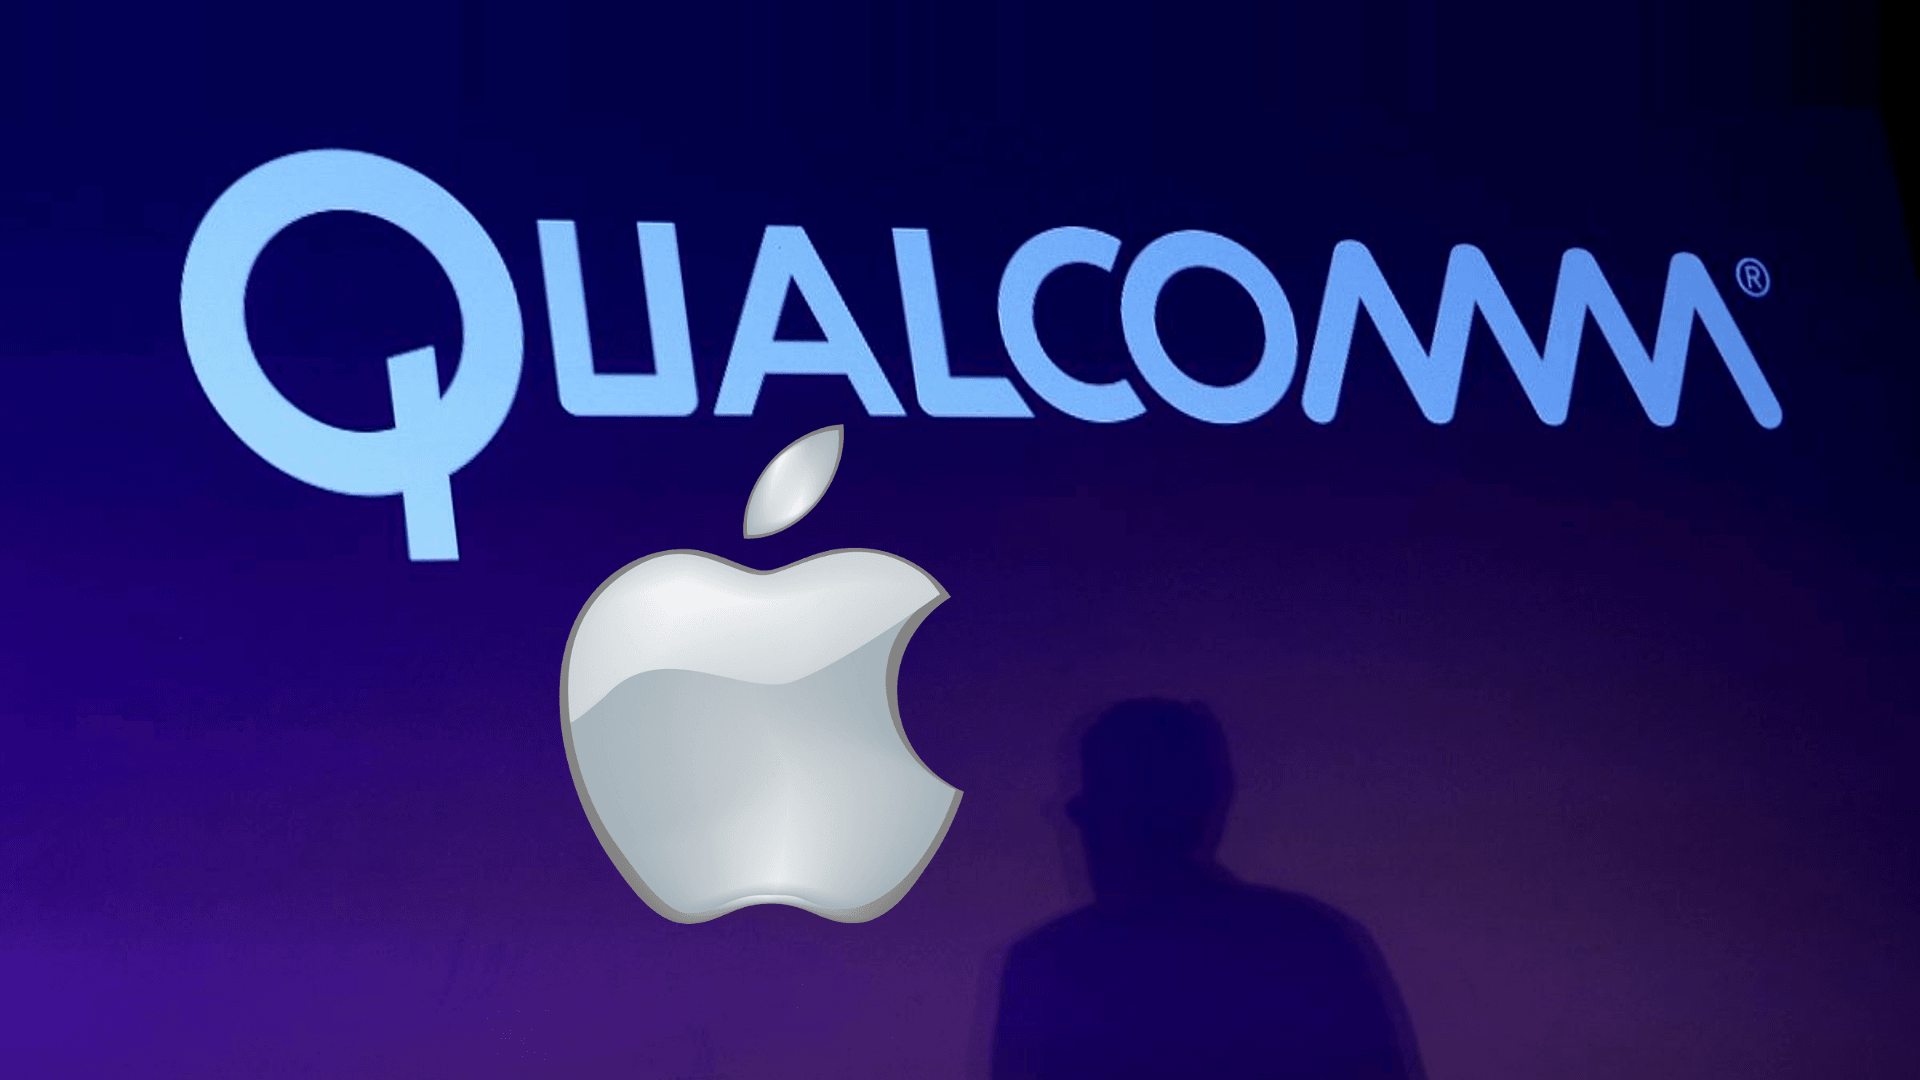 Qualcomm says Apple owes $7 billion in royalty payments